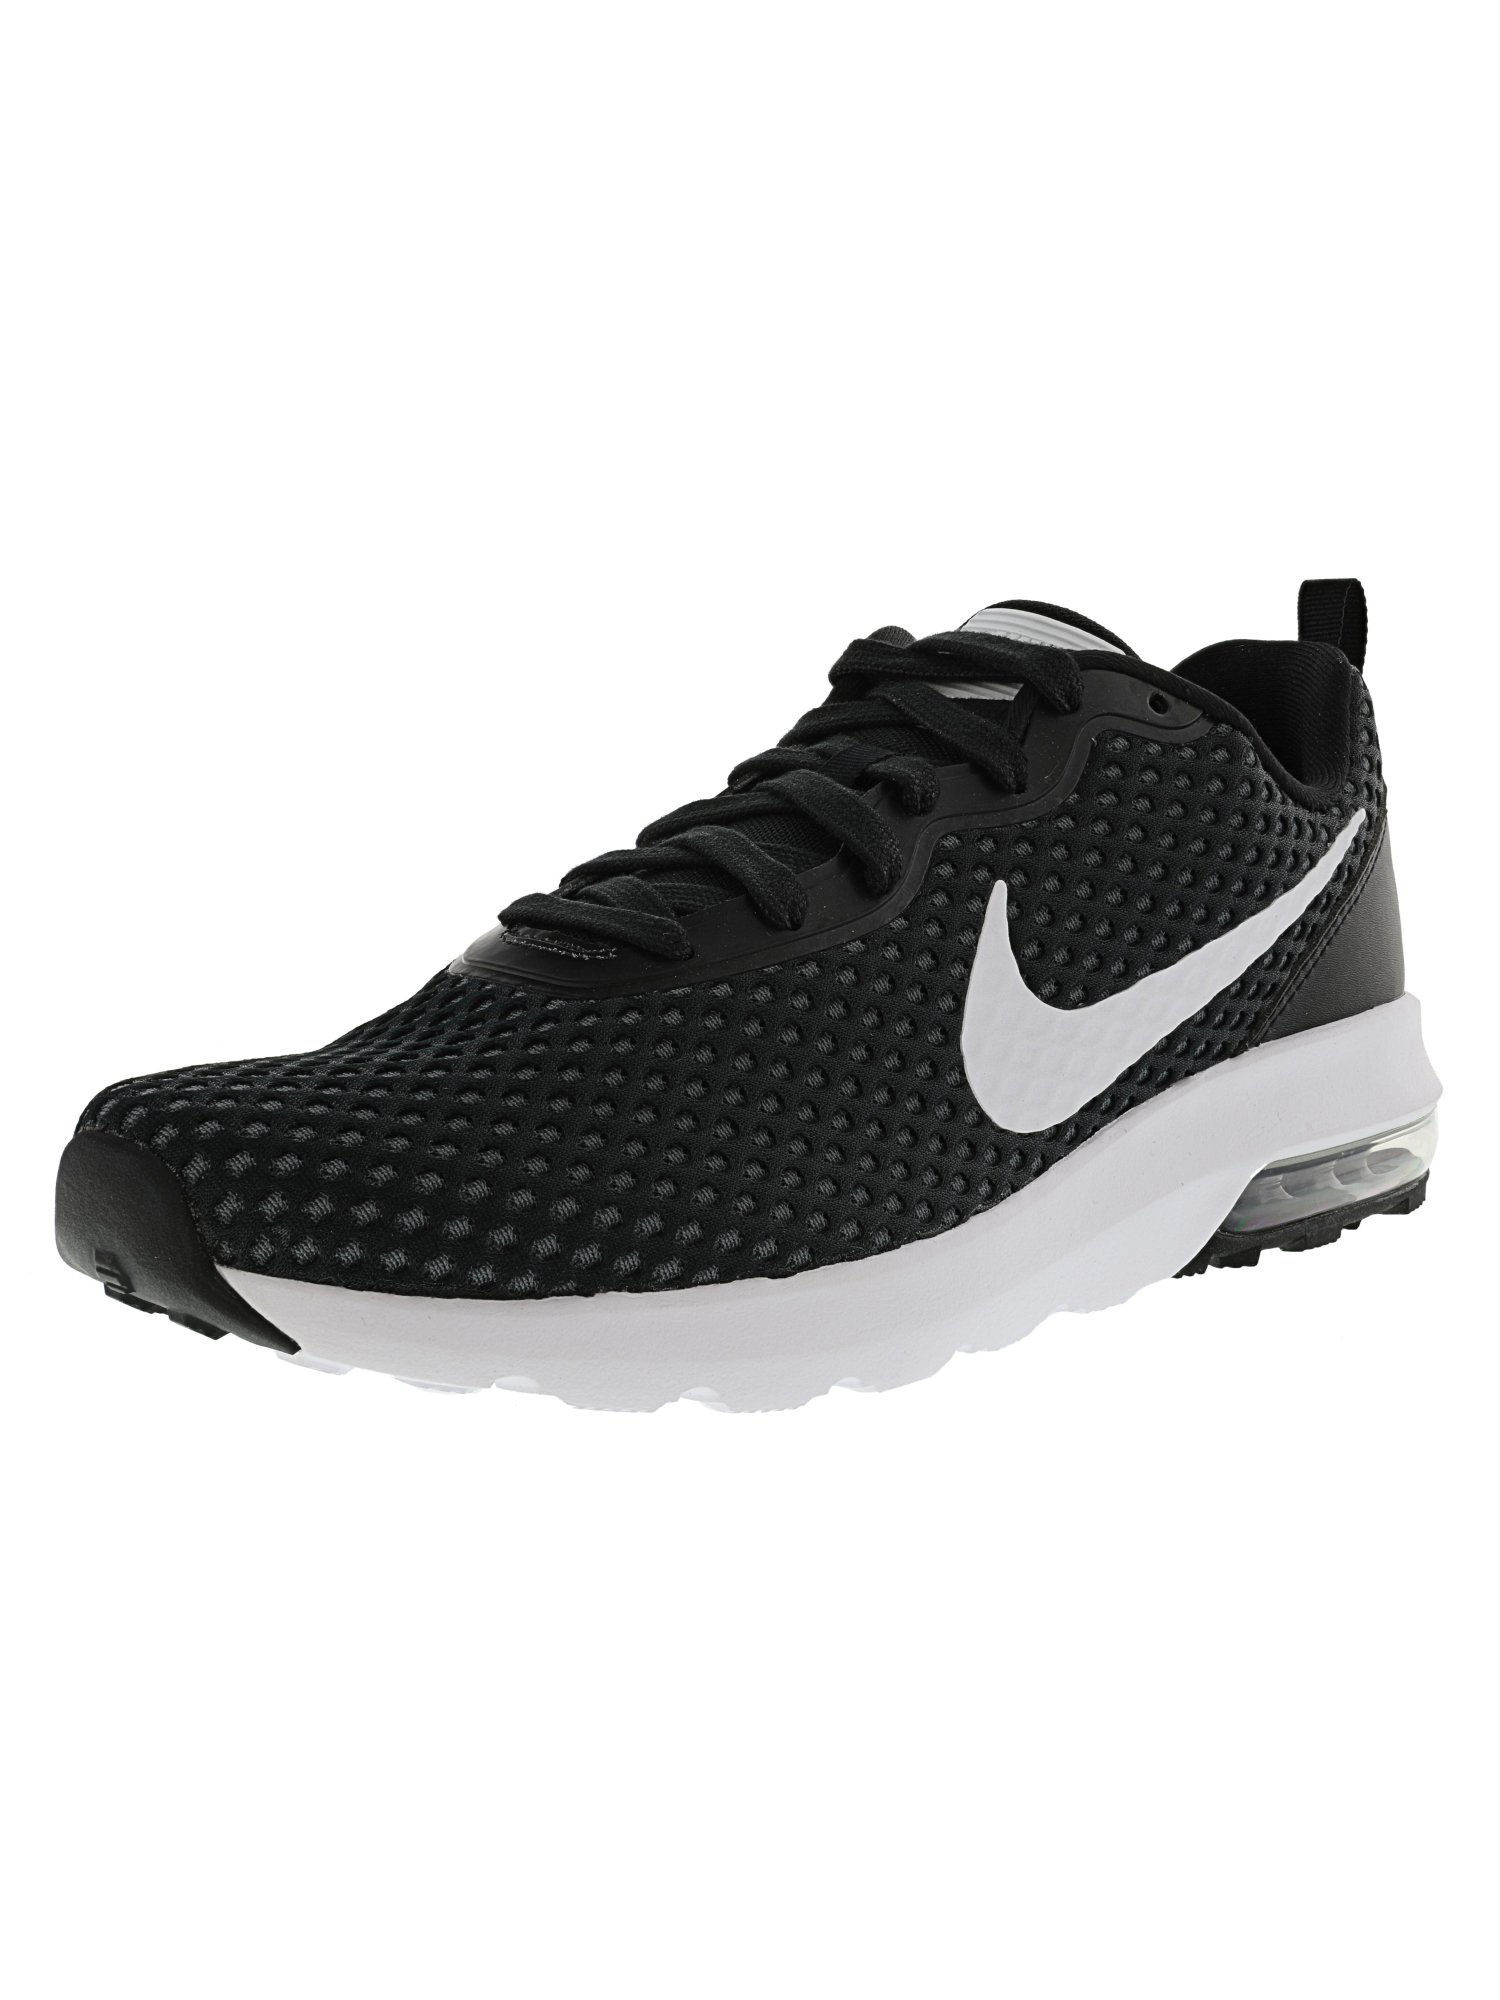 Nike | Air Max Turbulence LS Sneaker (Men) | Nordstrom Rack